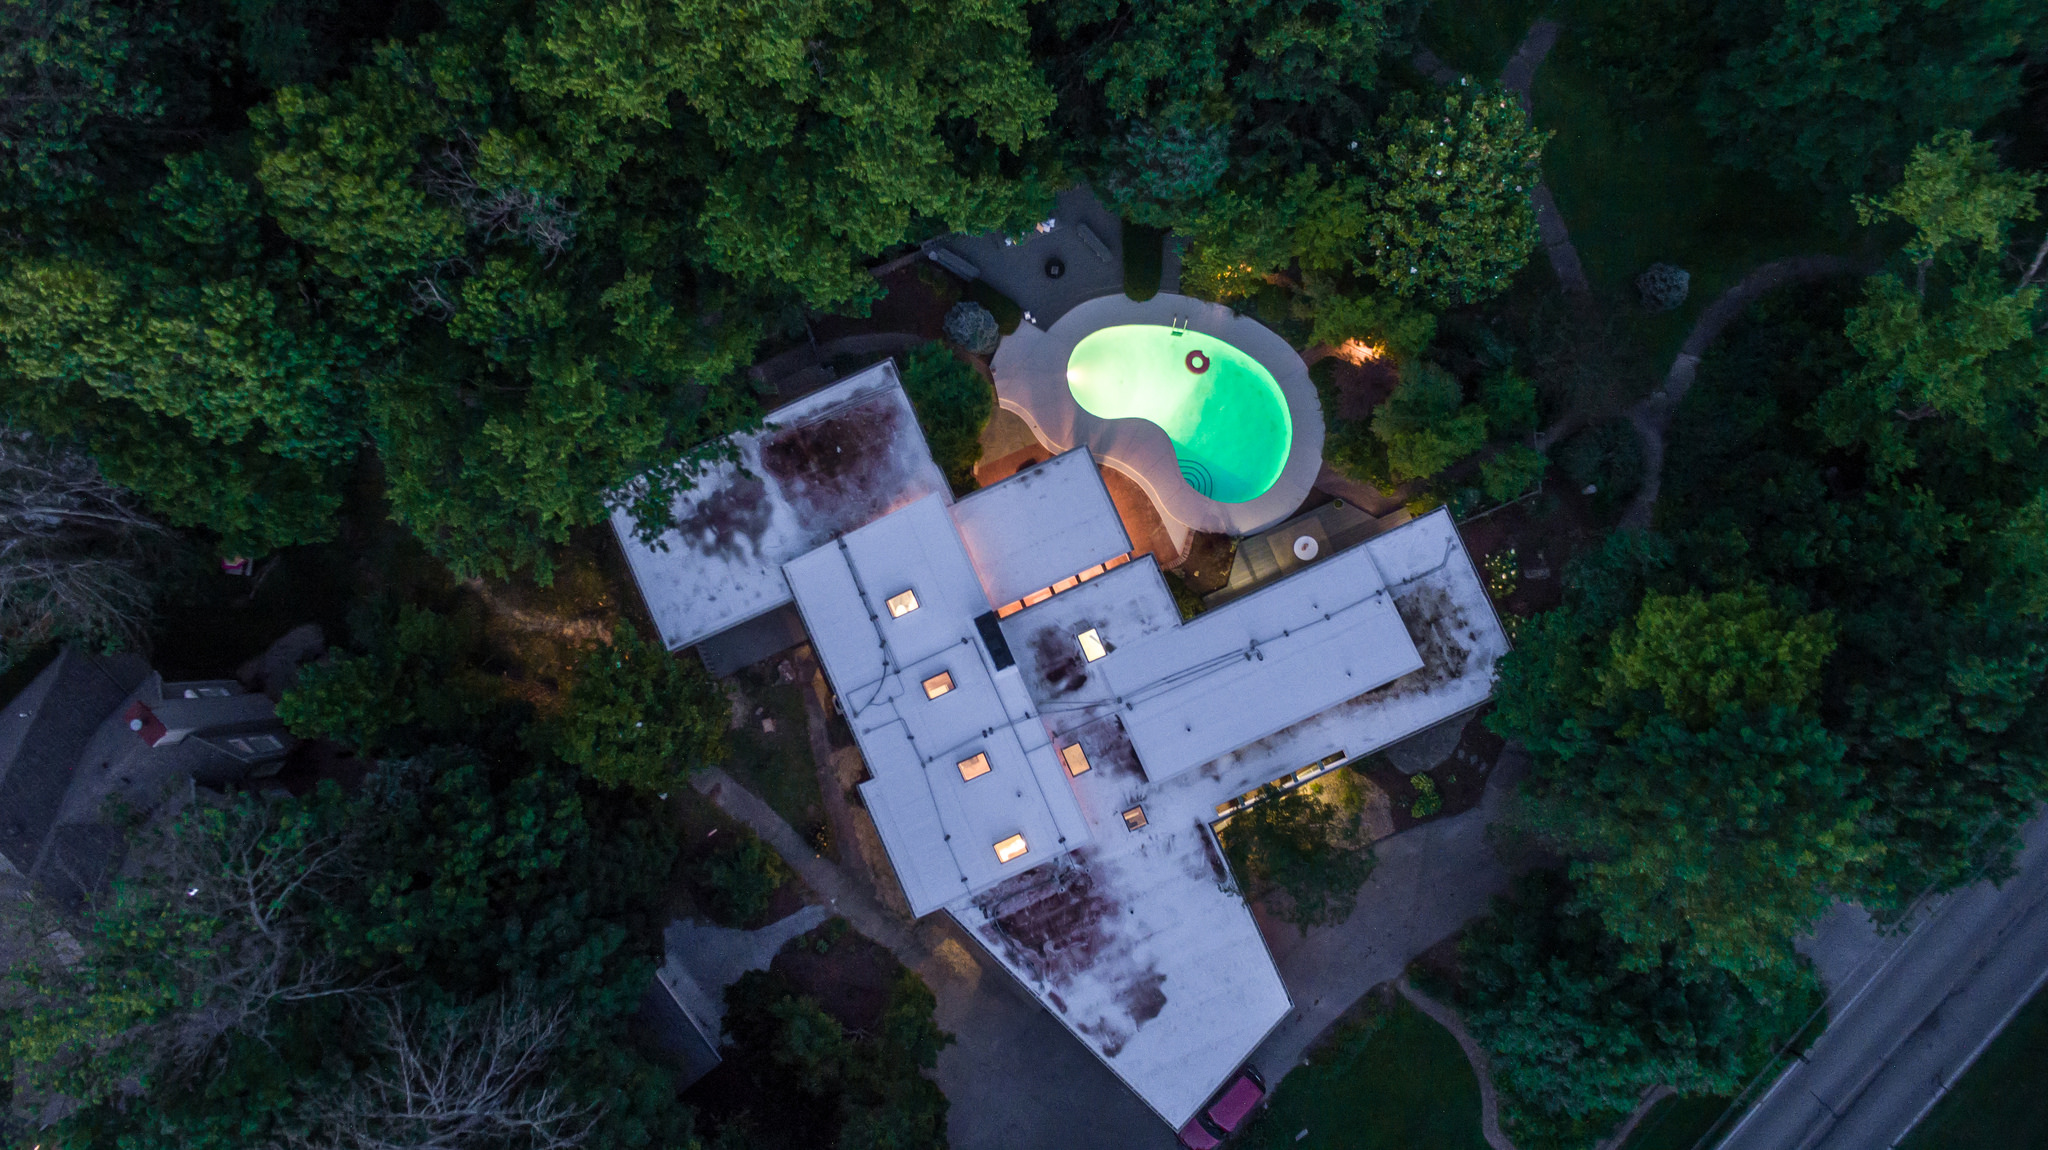 Drone shot of the house at night